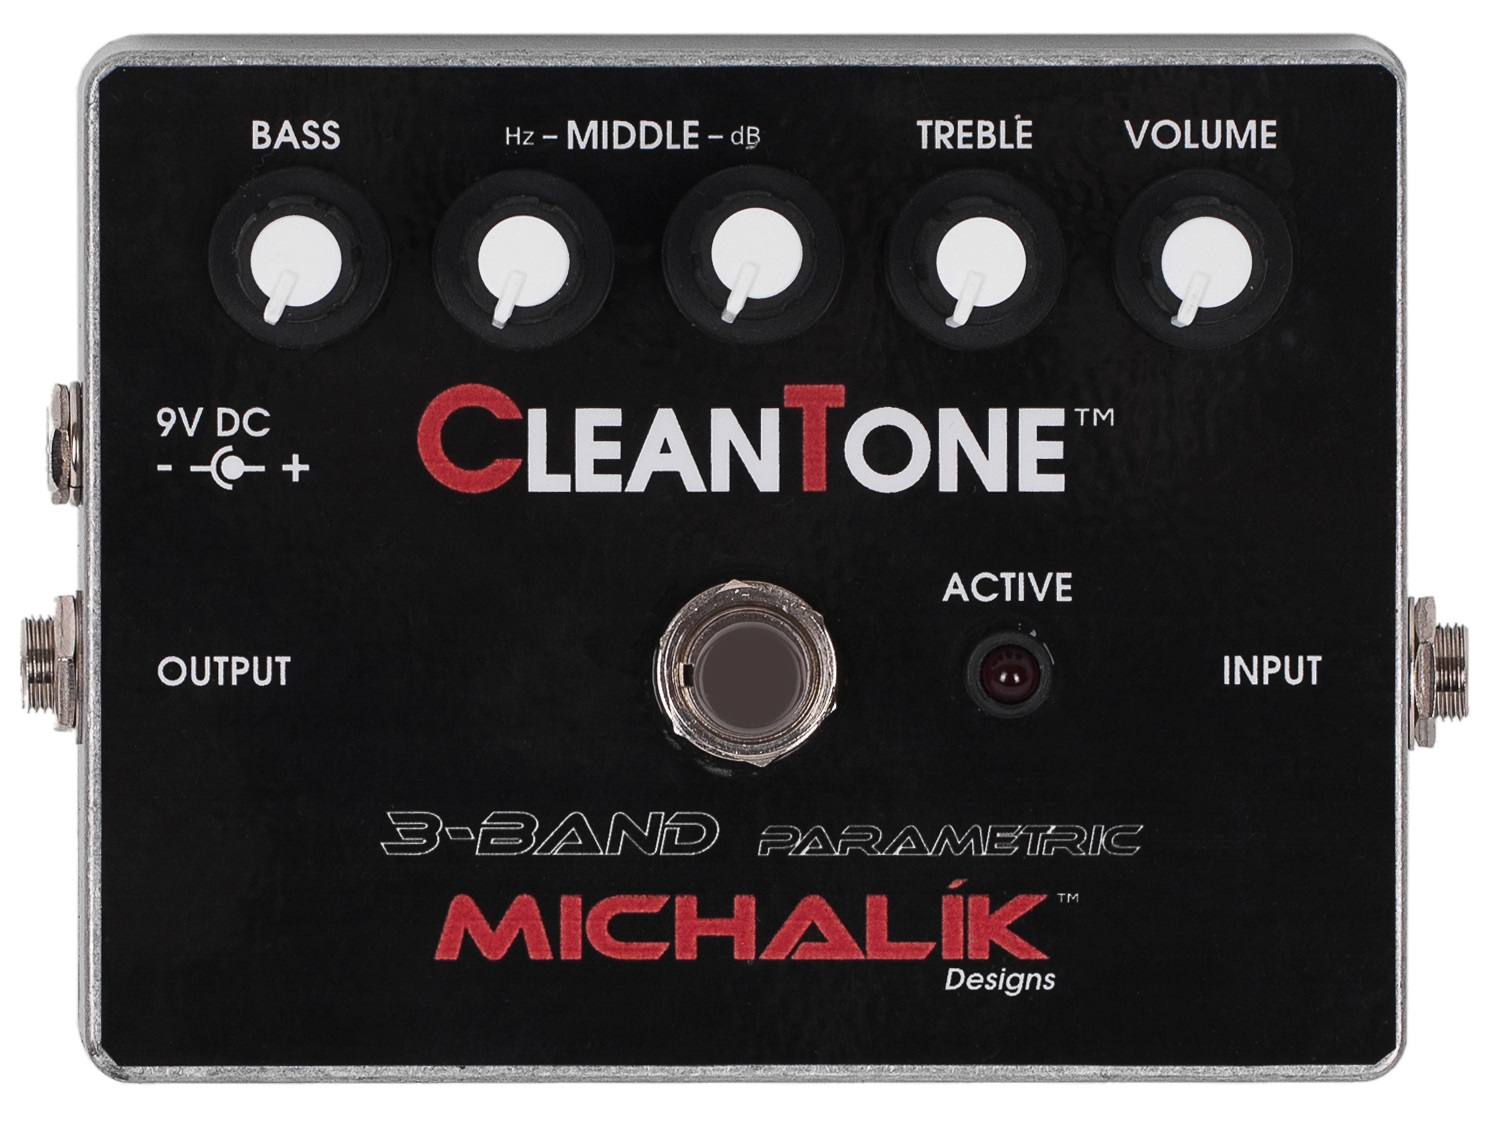 Michalík Clean Tone 3 Band Parametric